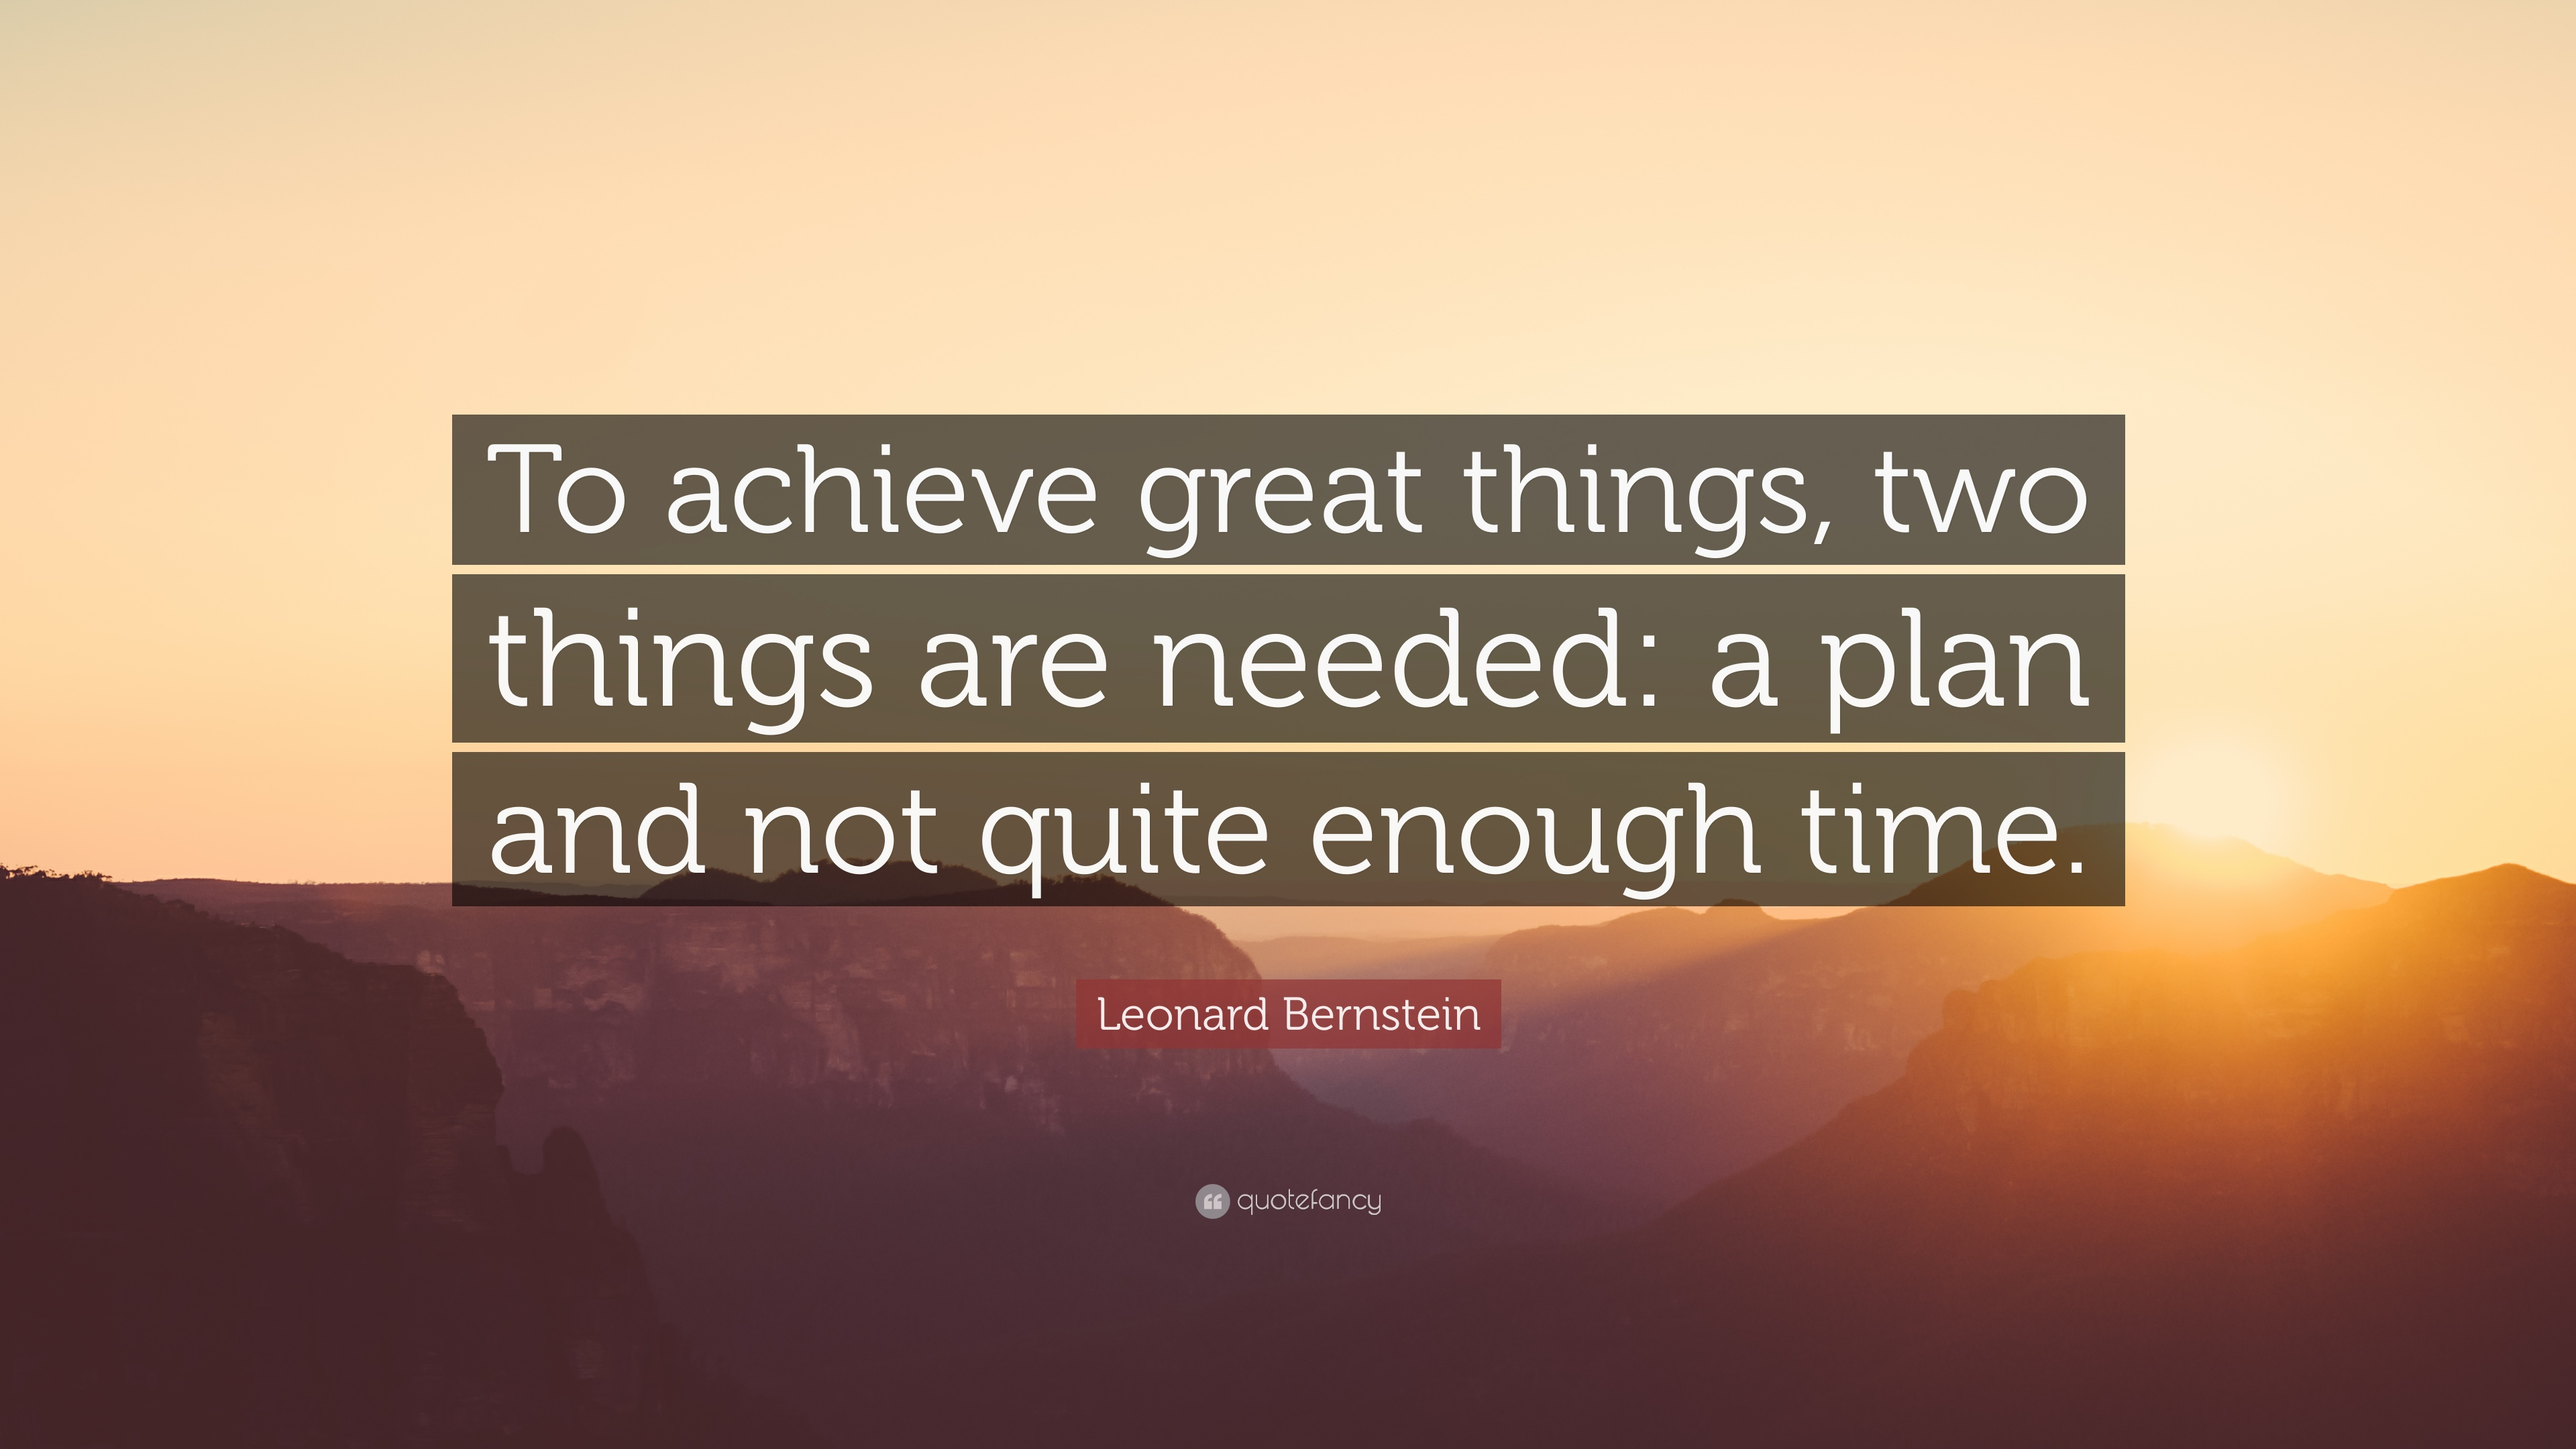 Leonard Bernstein Quote: U201cTo Achieve Great Things, Two Things Are Needed: A